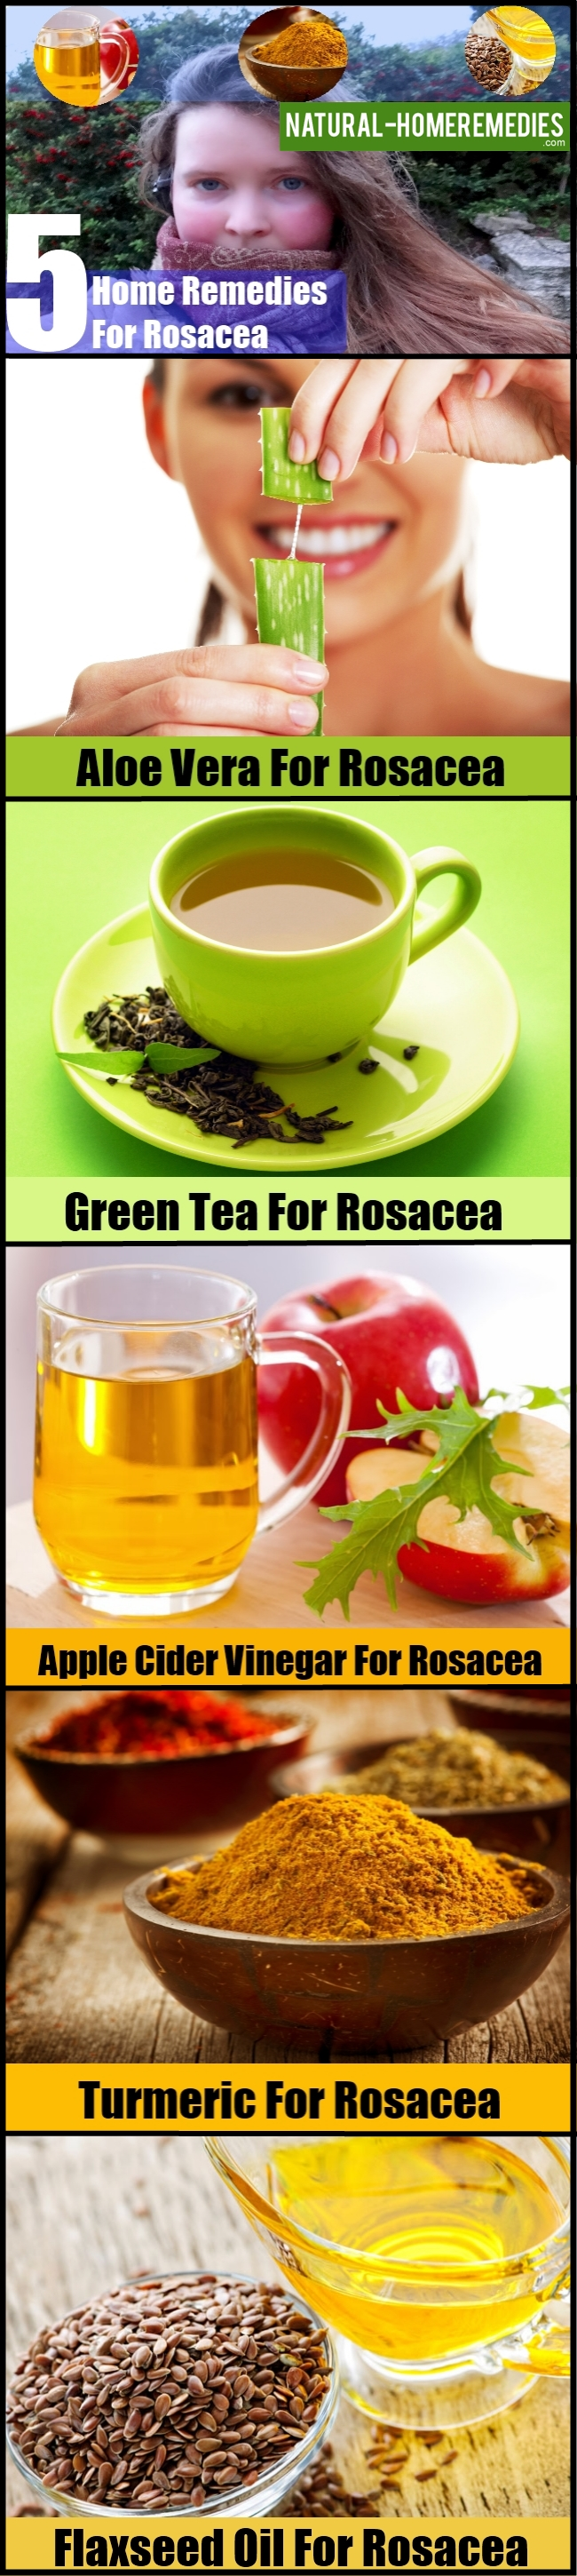 5 Powerful Home Remedies For Rosacea